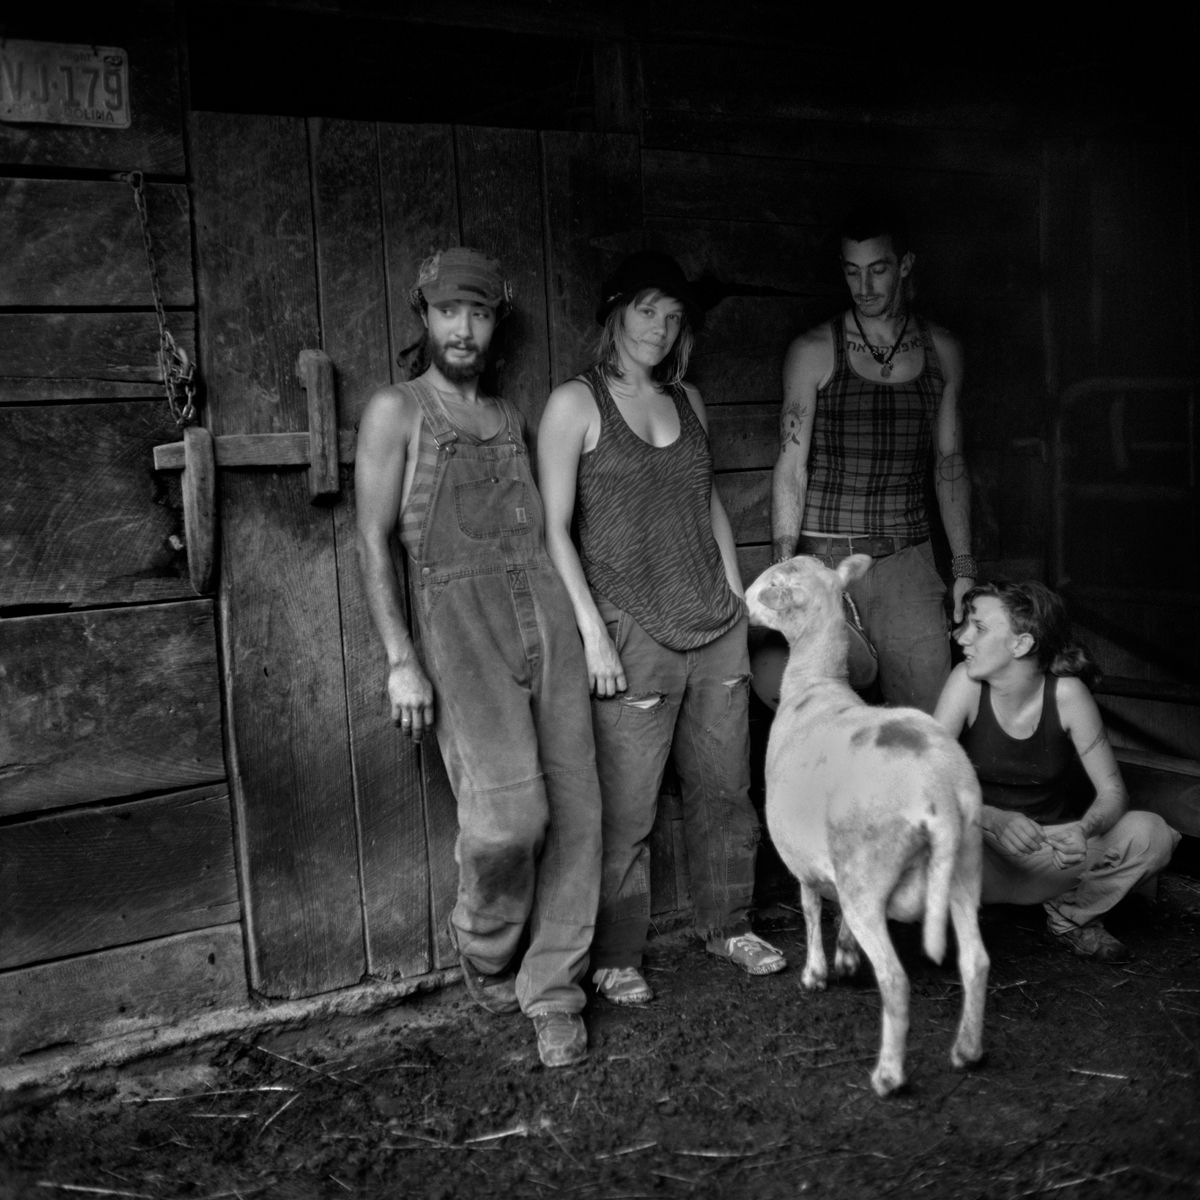 Rob Amberg, Gibberish, Ekho, Shu and Kate, Paw Paw, Madison County, NC, 2014, Archival Pigment Print, 5 x 5 inches (image size), Edition of 10, Photography